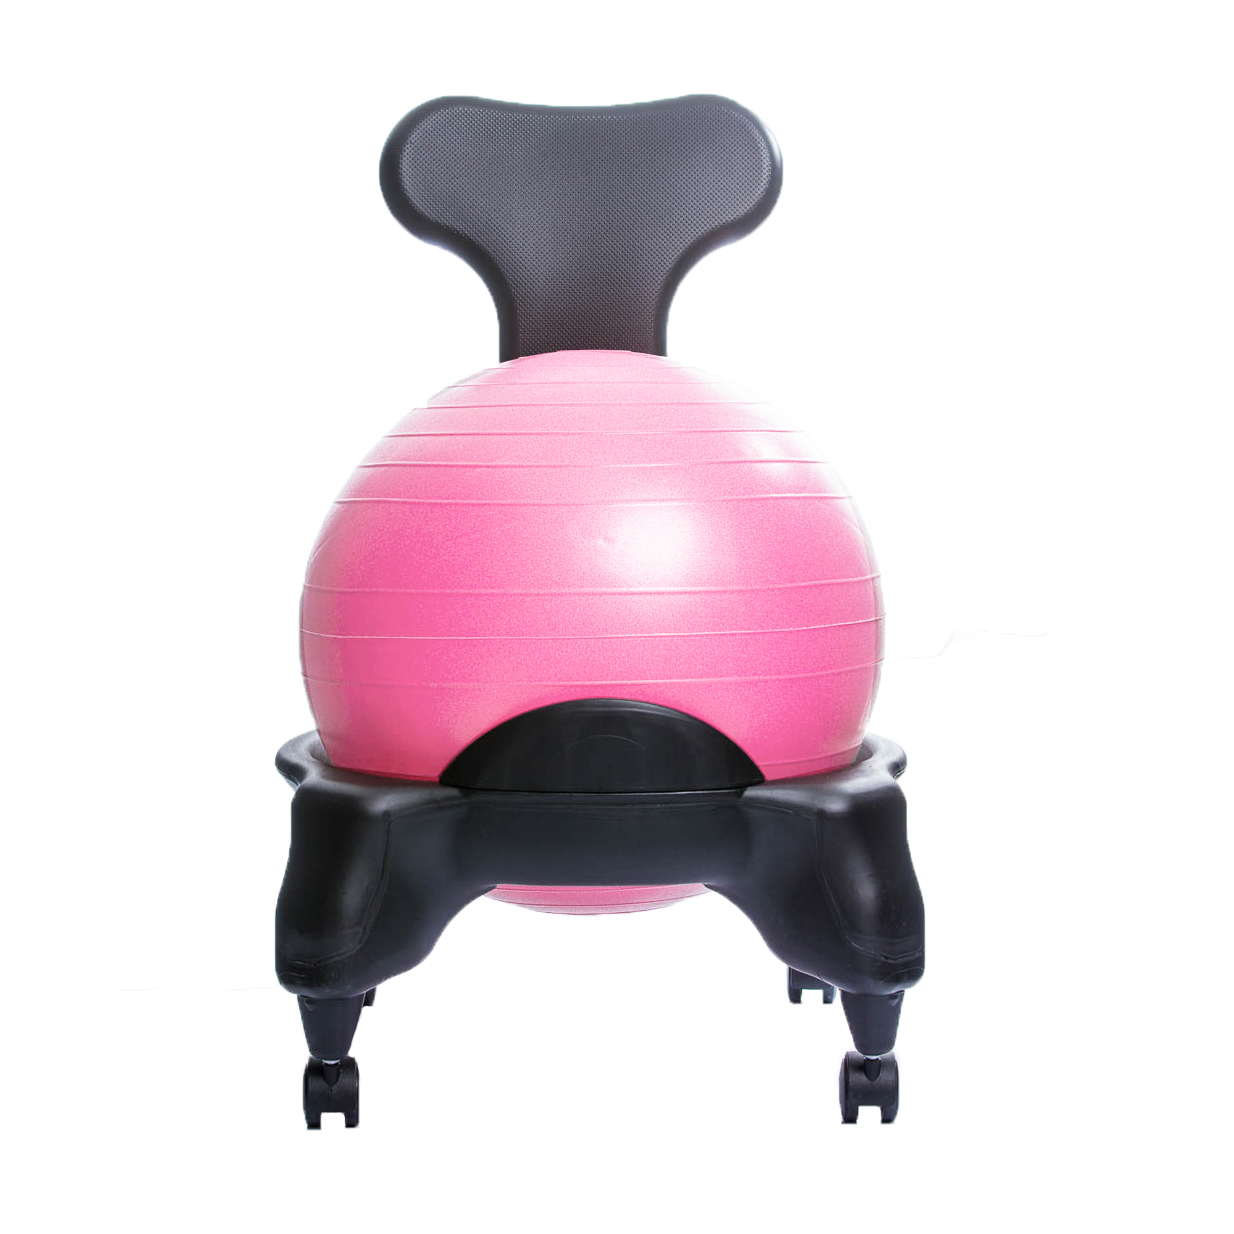 TONIC CHAIR Originale ballon Rose - Chaise Ergonomique